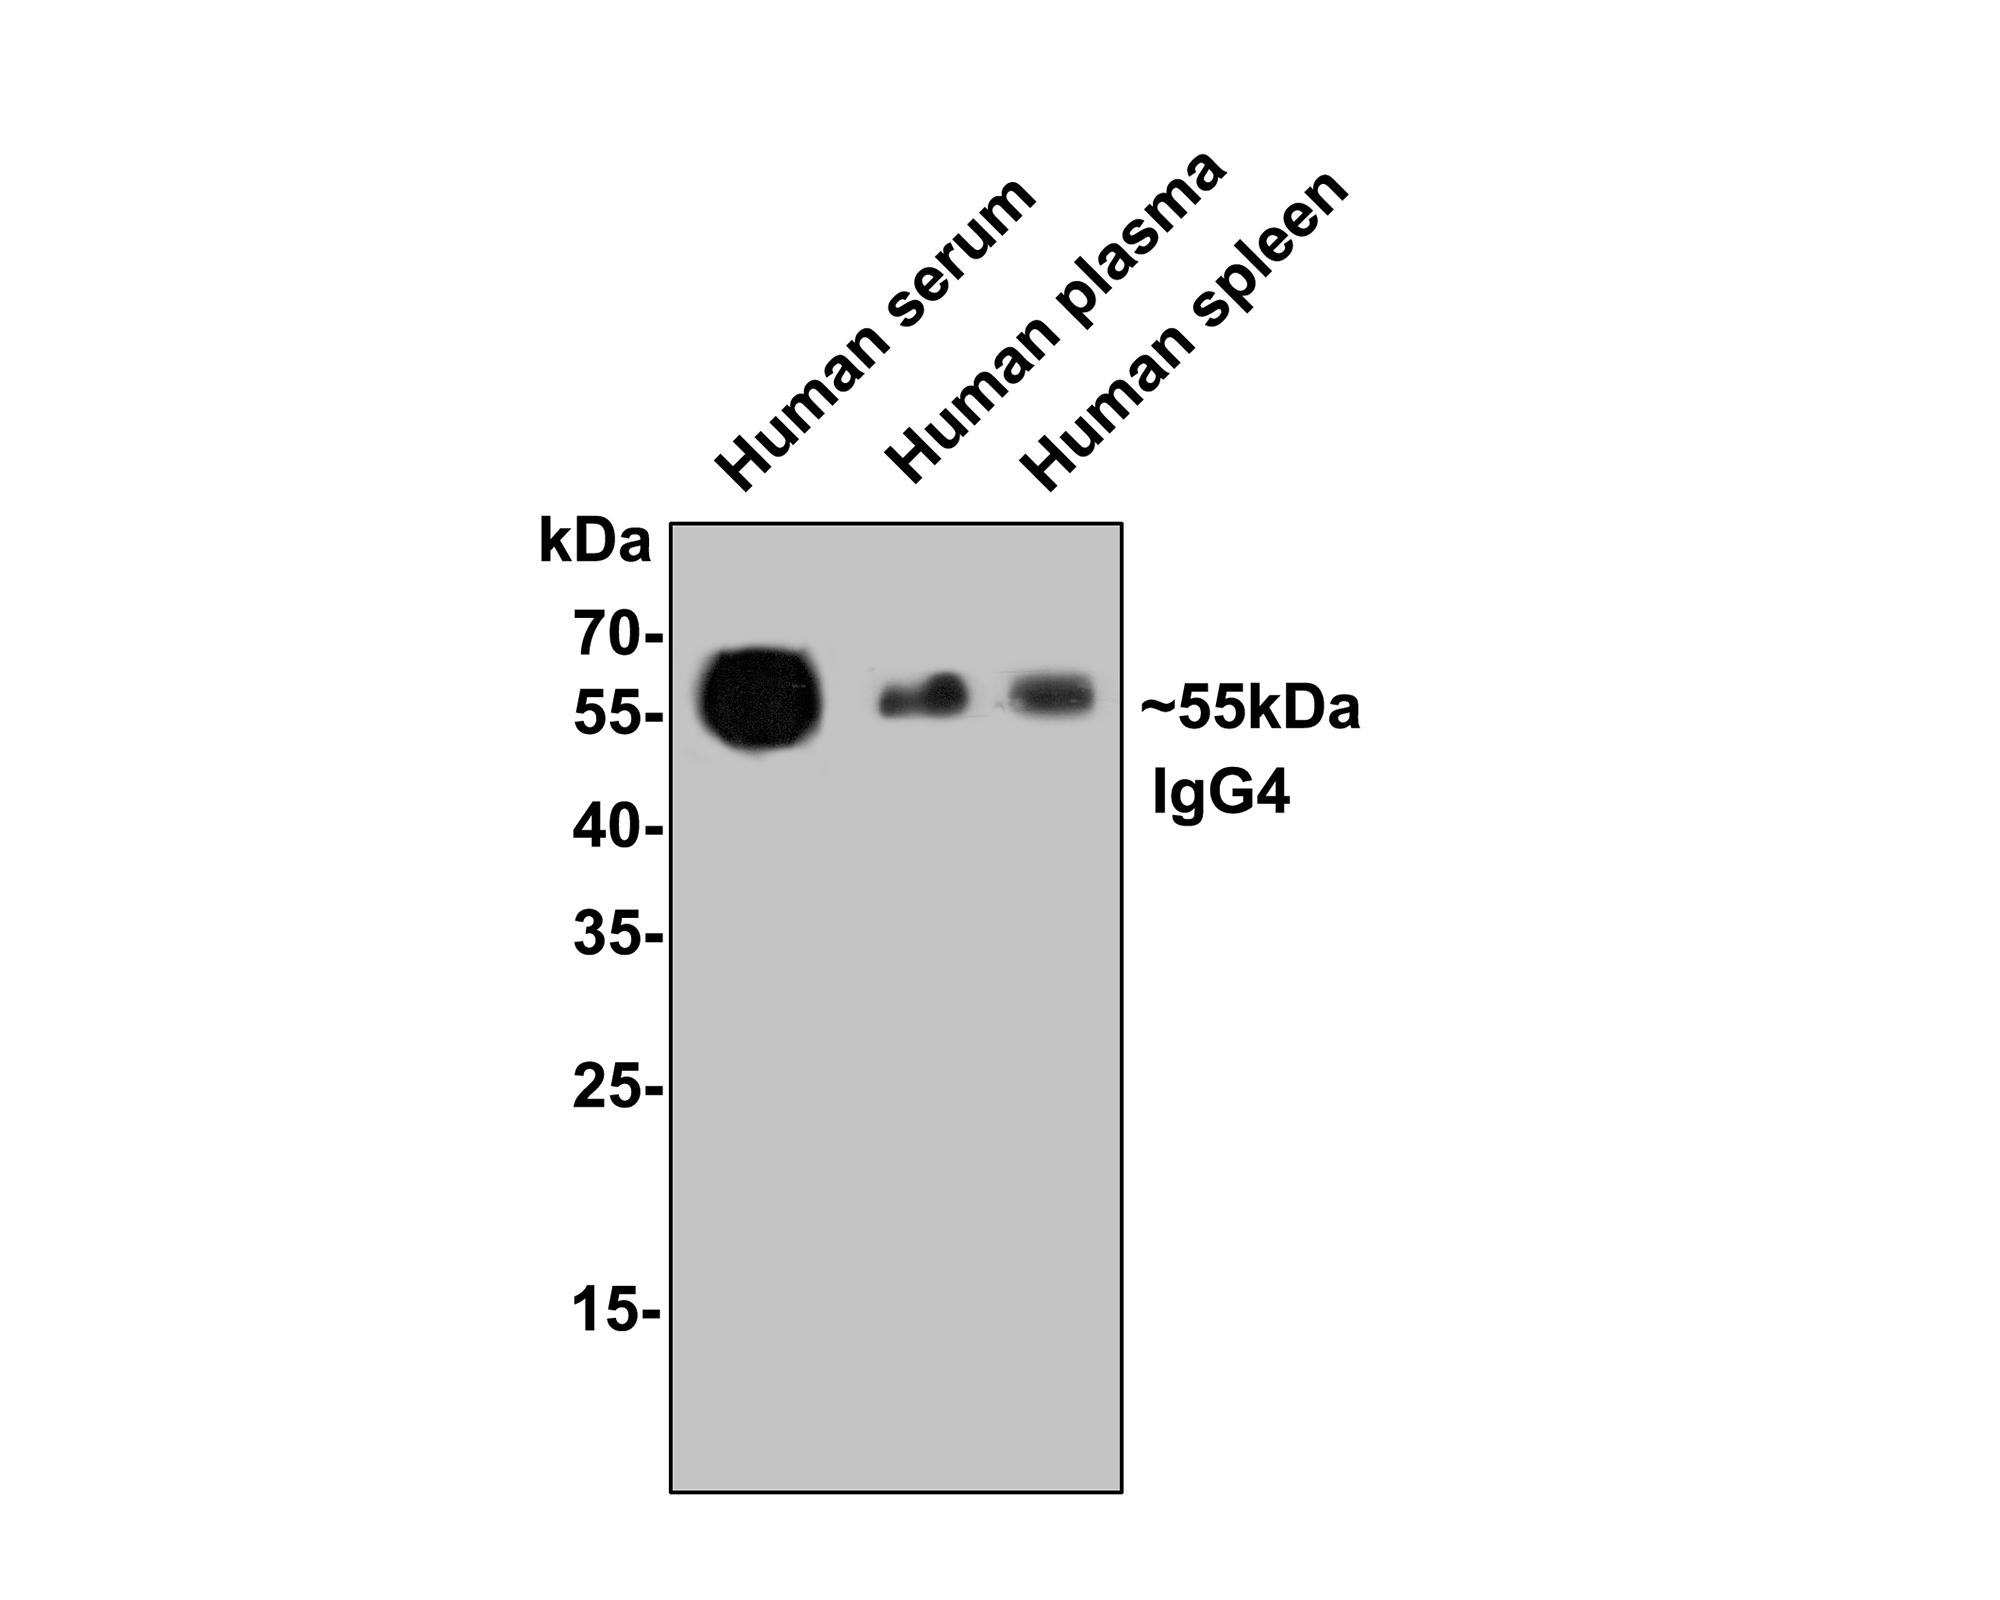 Western blot analysis of IgG4 on human plasma lysates. Proteins were transferred to a PVDF membrane and blocked with 5% BSA in PBS for 1 hour at room temperature. The primary antibody (ET1609-56, 1/500) was used in 5% BSA at room temperature for 2 hours. Goat Anti-Rabbit IgG - HRP Secondary Antibody (HA1001) at 1:5,000 dilution was used for 1 hour at room temperature.